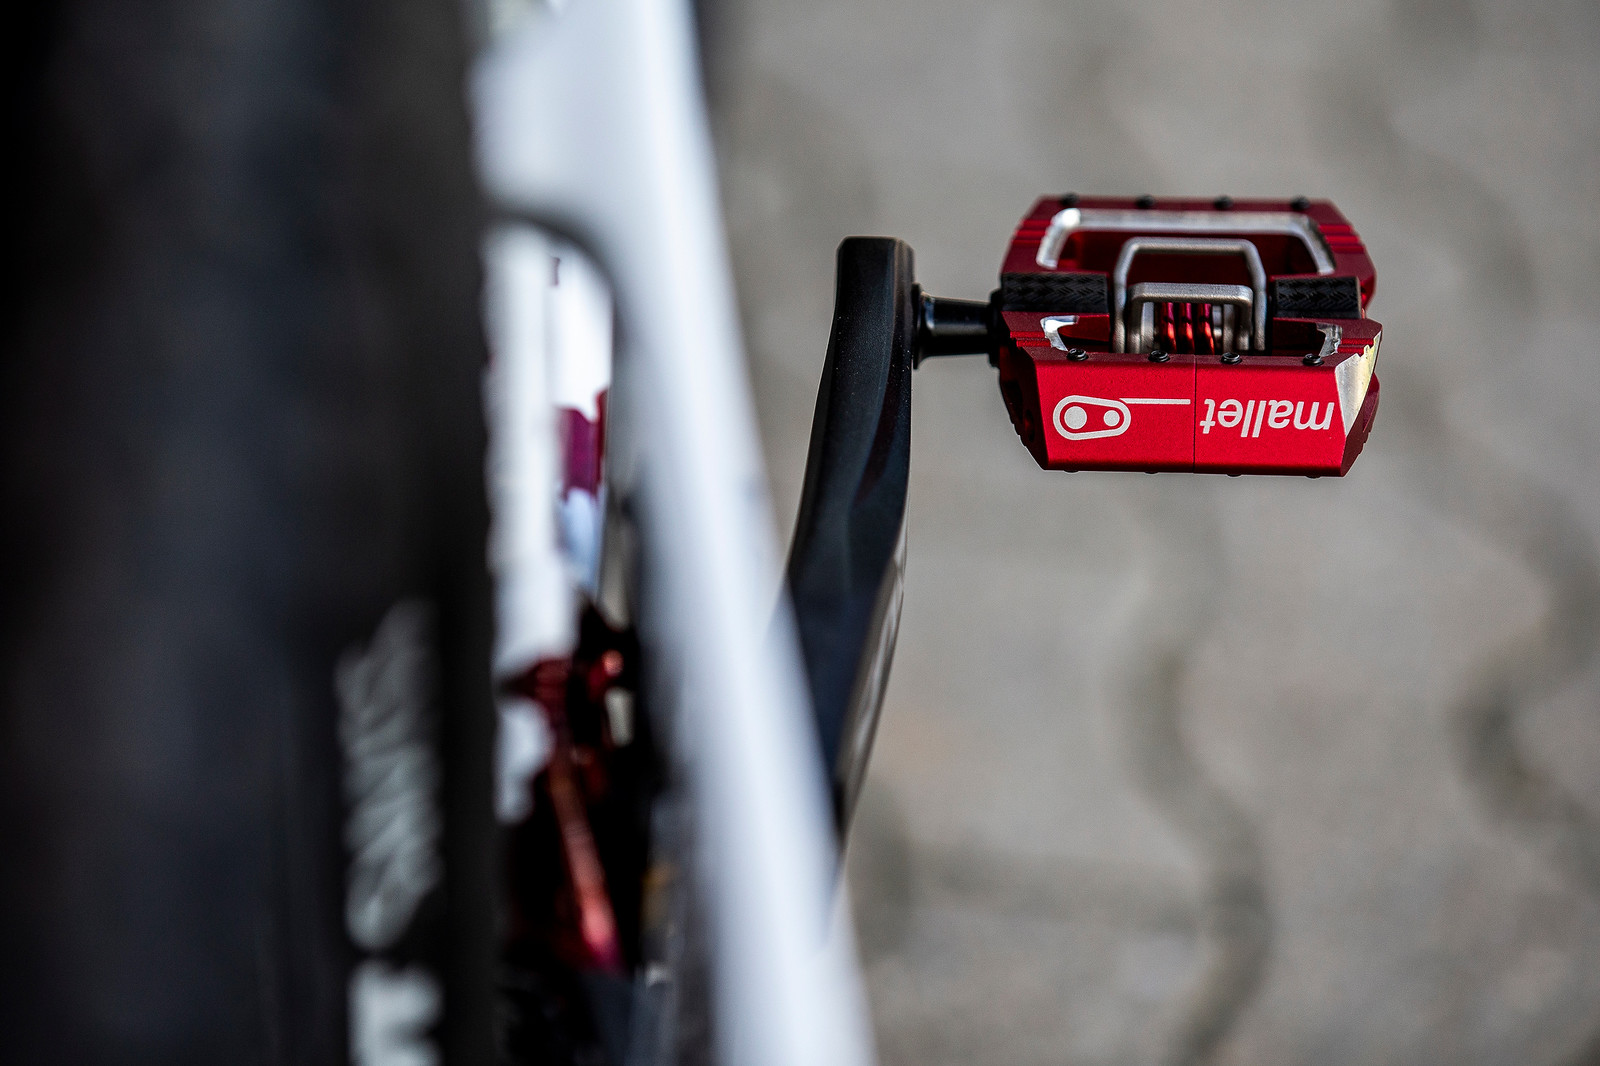 Crankbrothers Mallets - WORLD CHAMPS BIKE - Tahnee Seagrave's Transition TR11 - Mountain Biking Pictures - Vital MTB